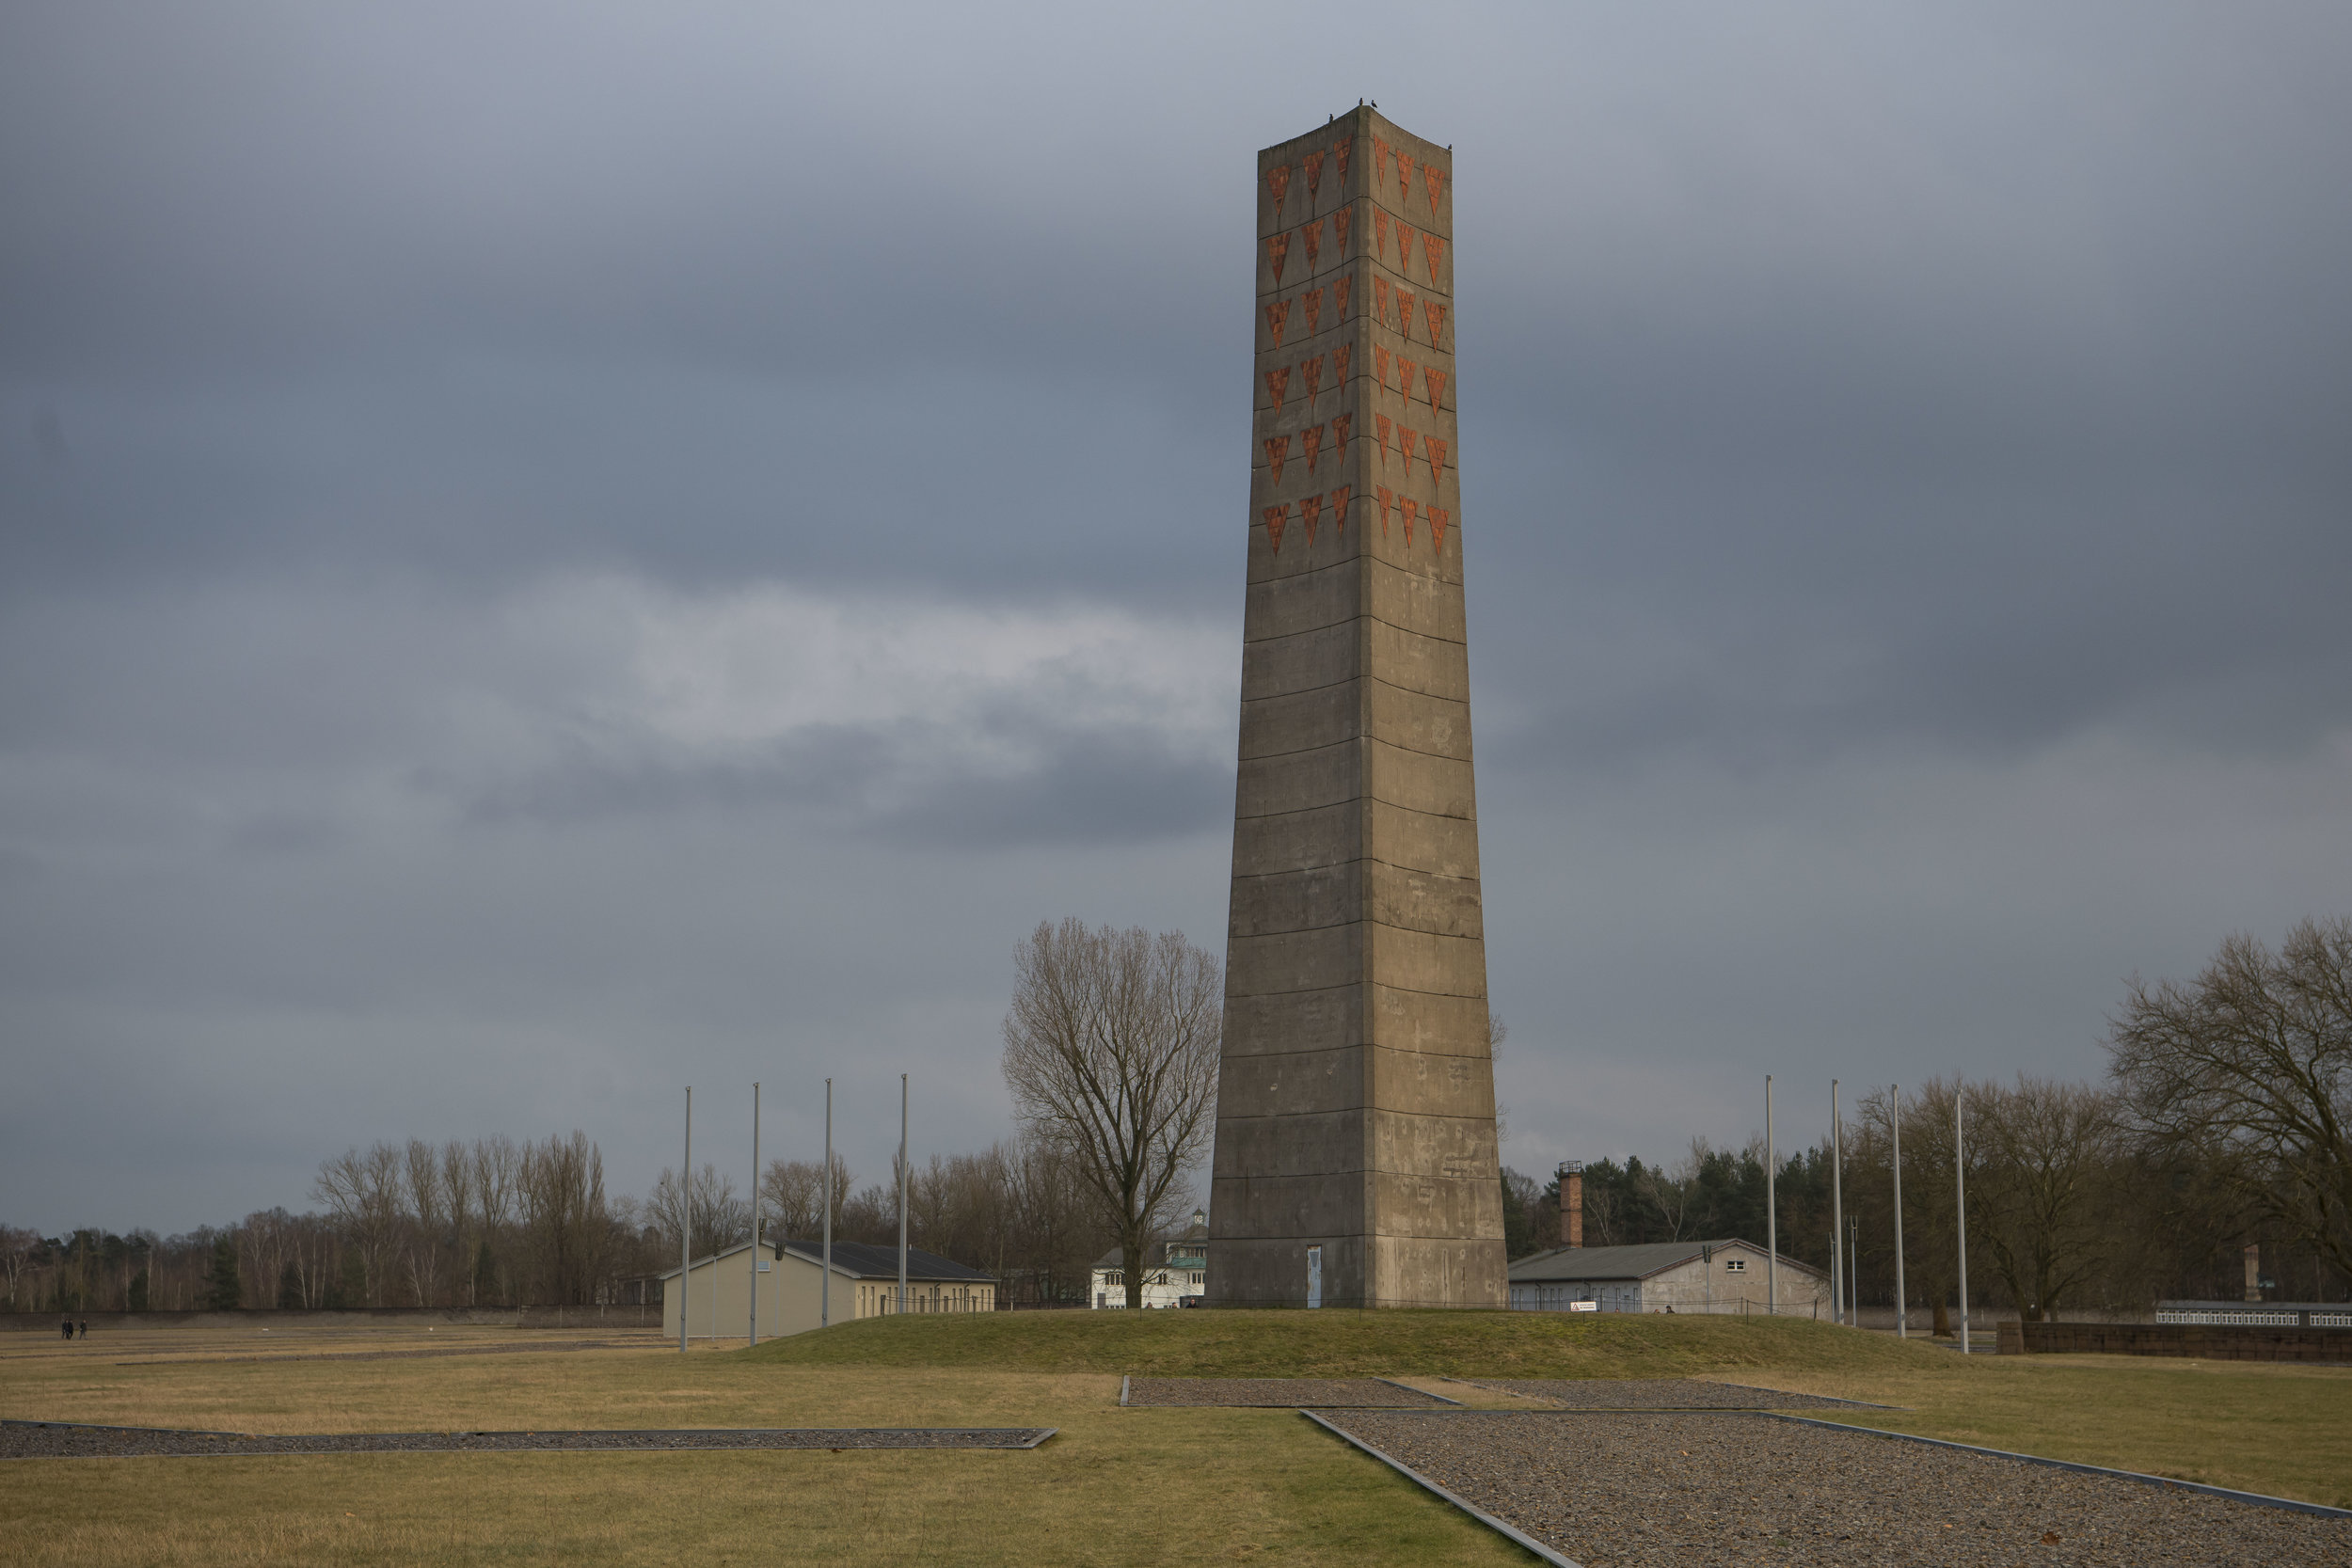 Sachsenhausen was a Nazi concentration camp in Oranienburg, Berlin, Germany, used primarily for political prisoners from 1936 to the end of the Third Reich in May 1945.